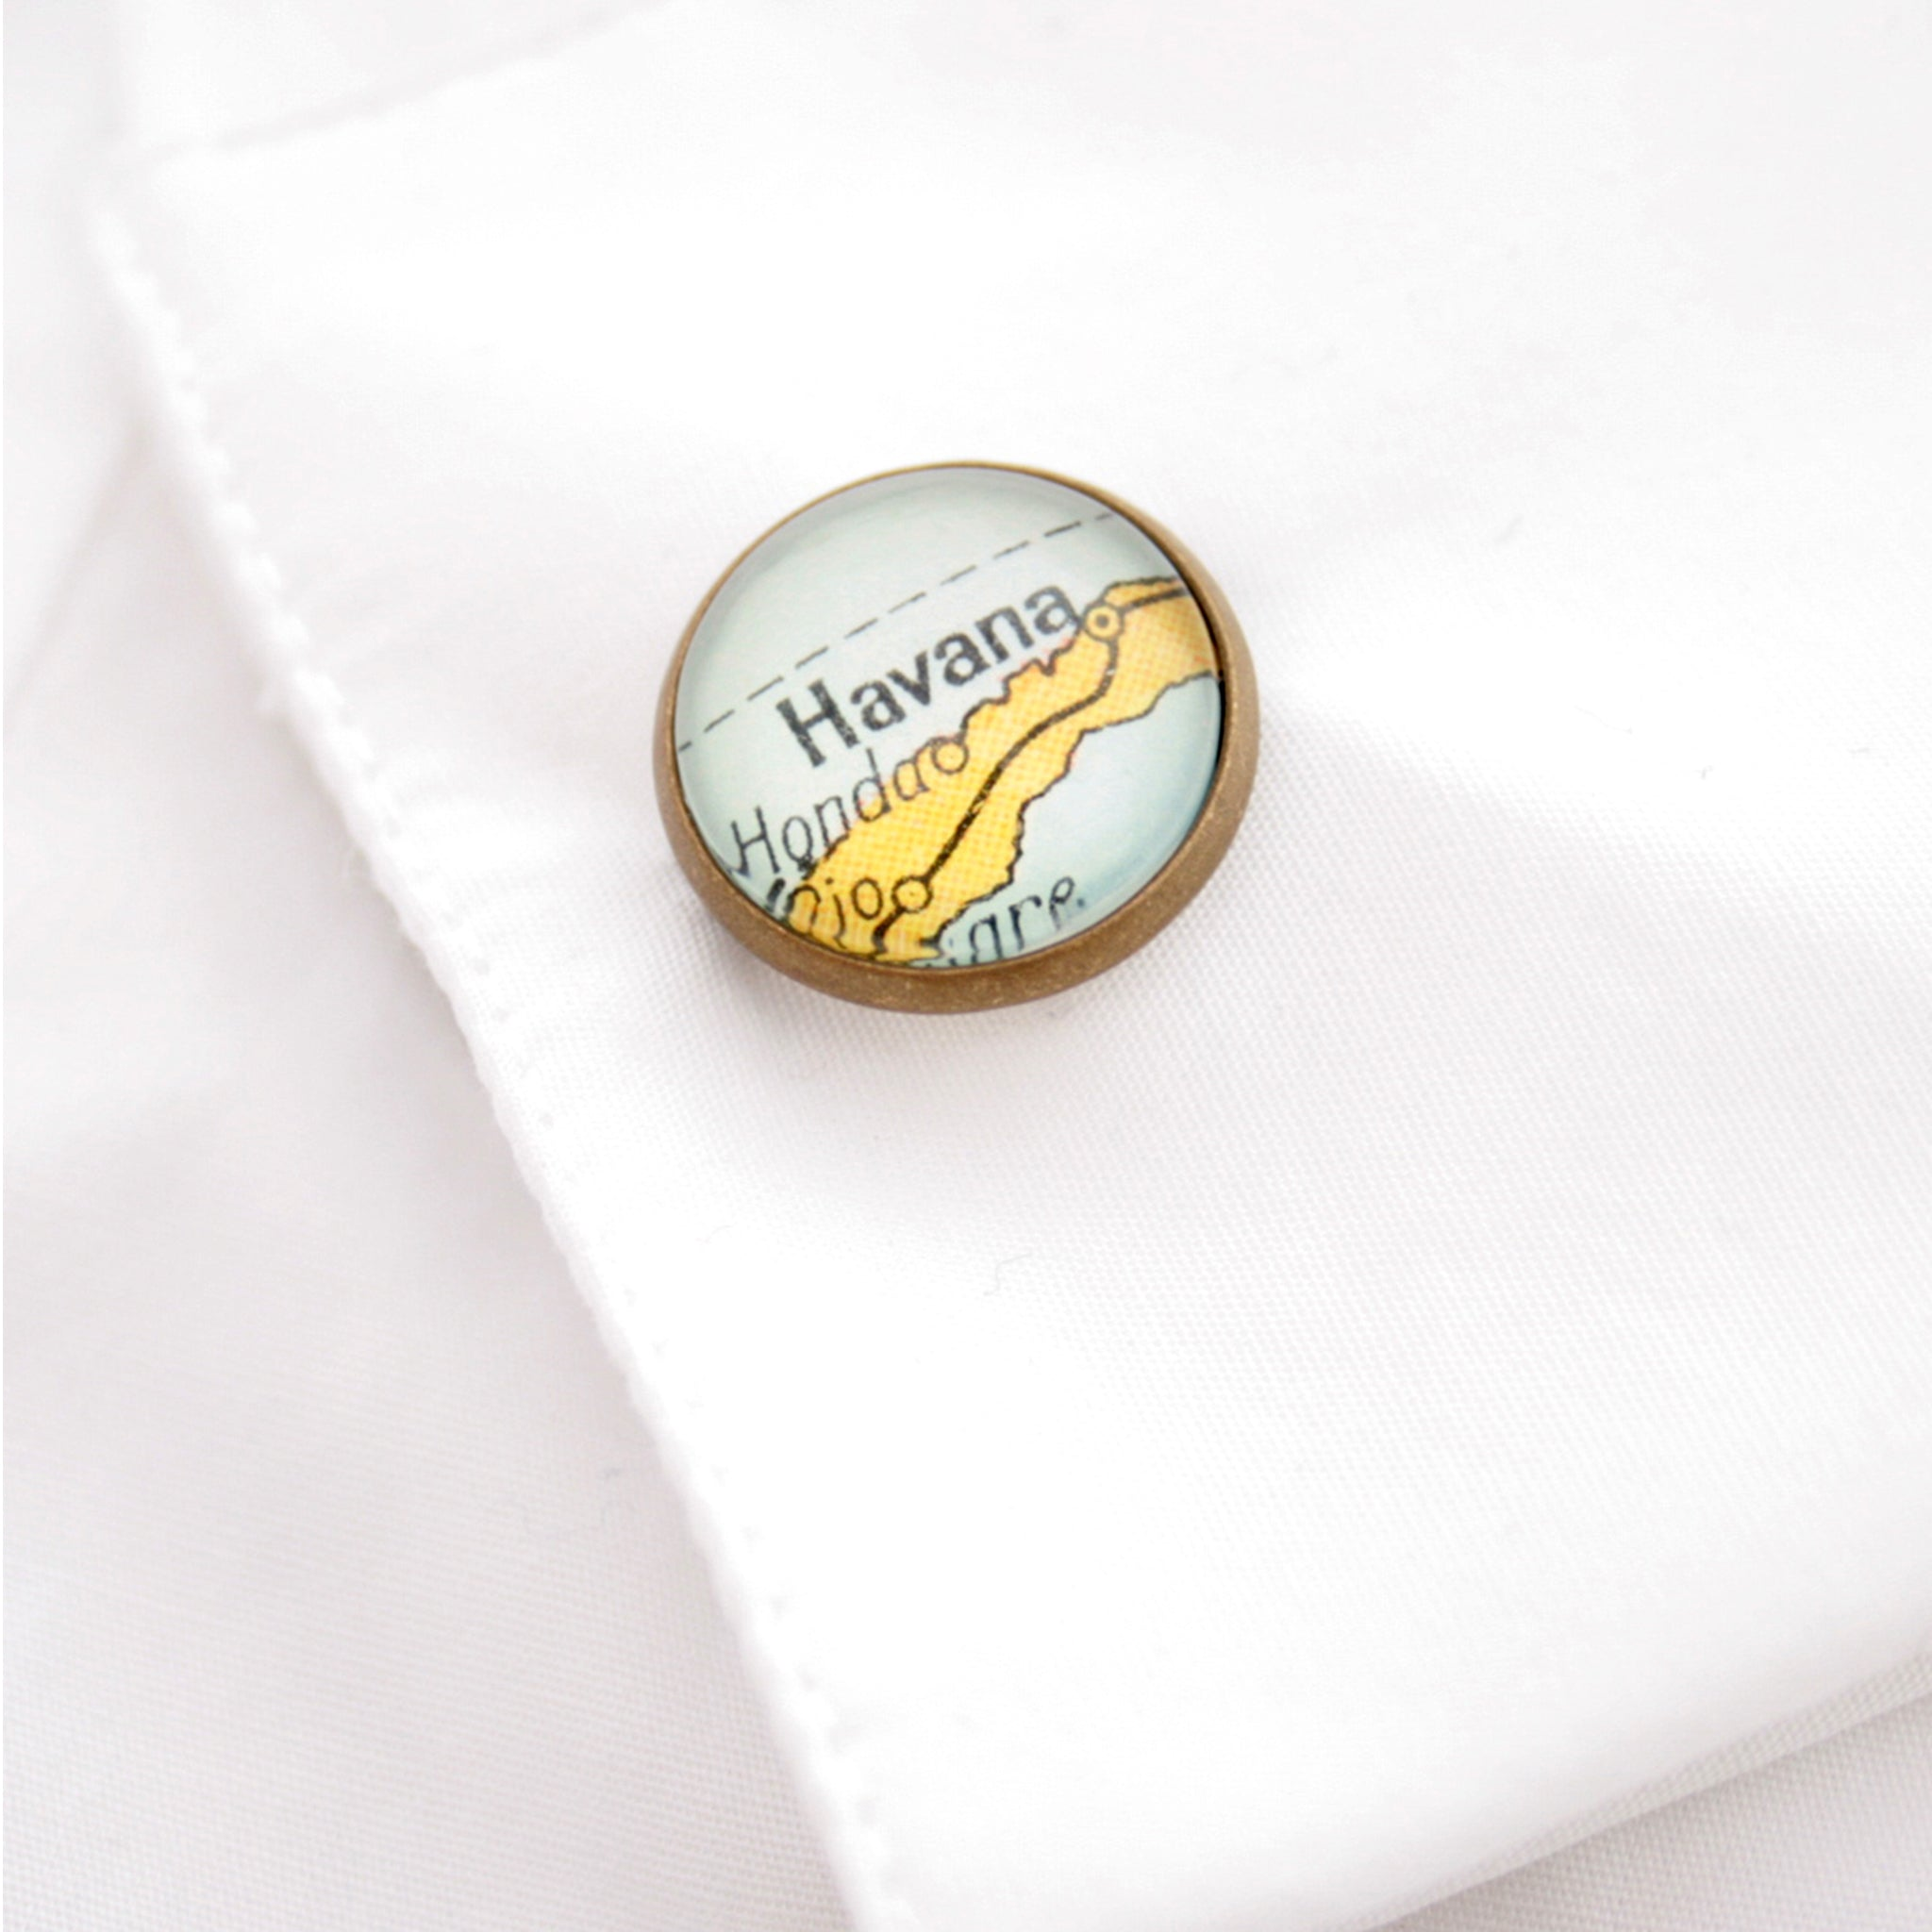 Personalised map cufflink in antique bronze color featuring map of Havana in a shirt cuff